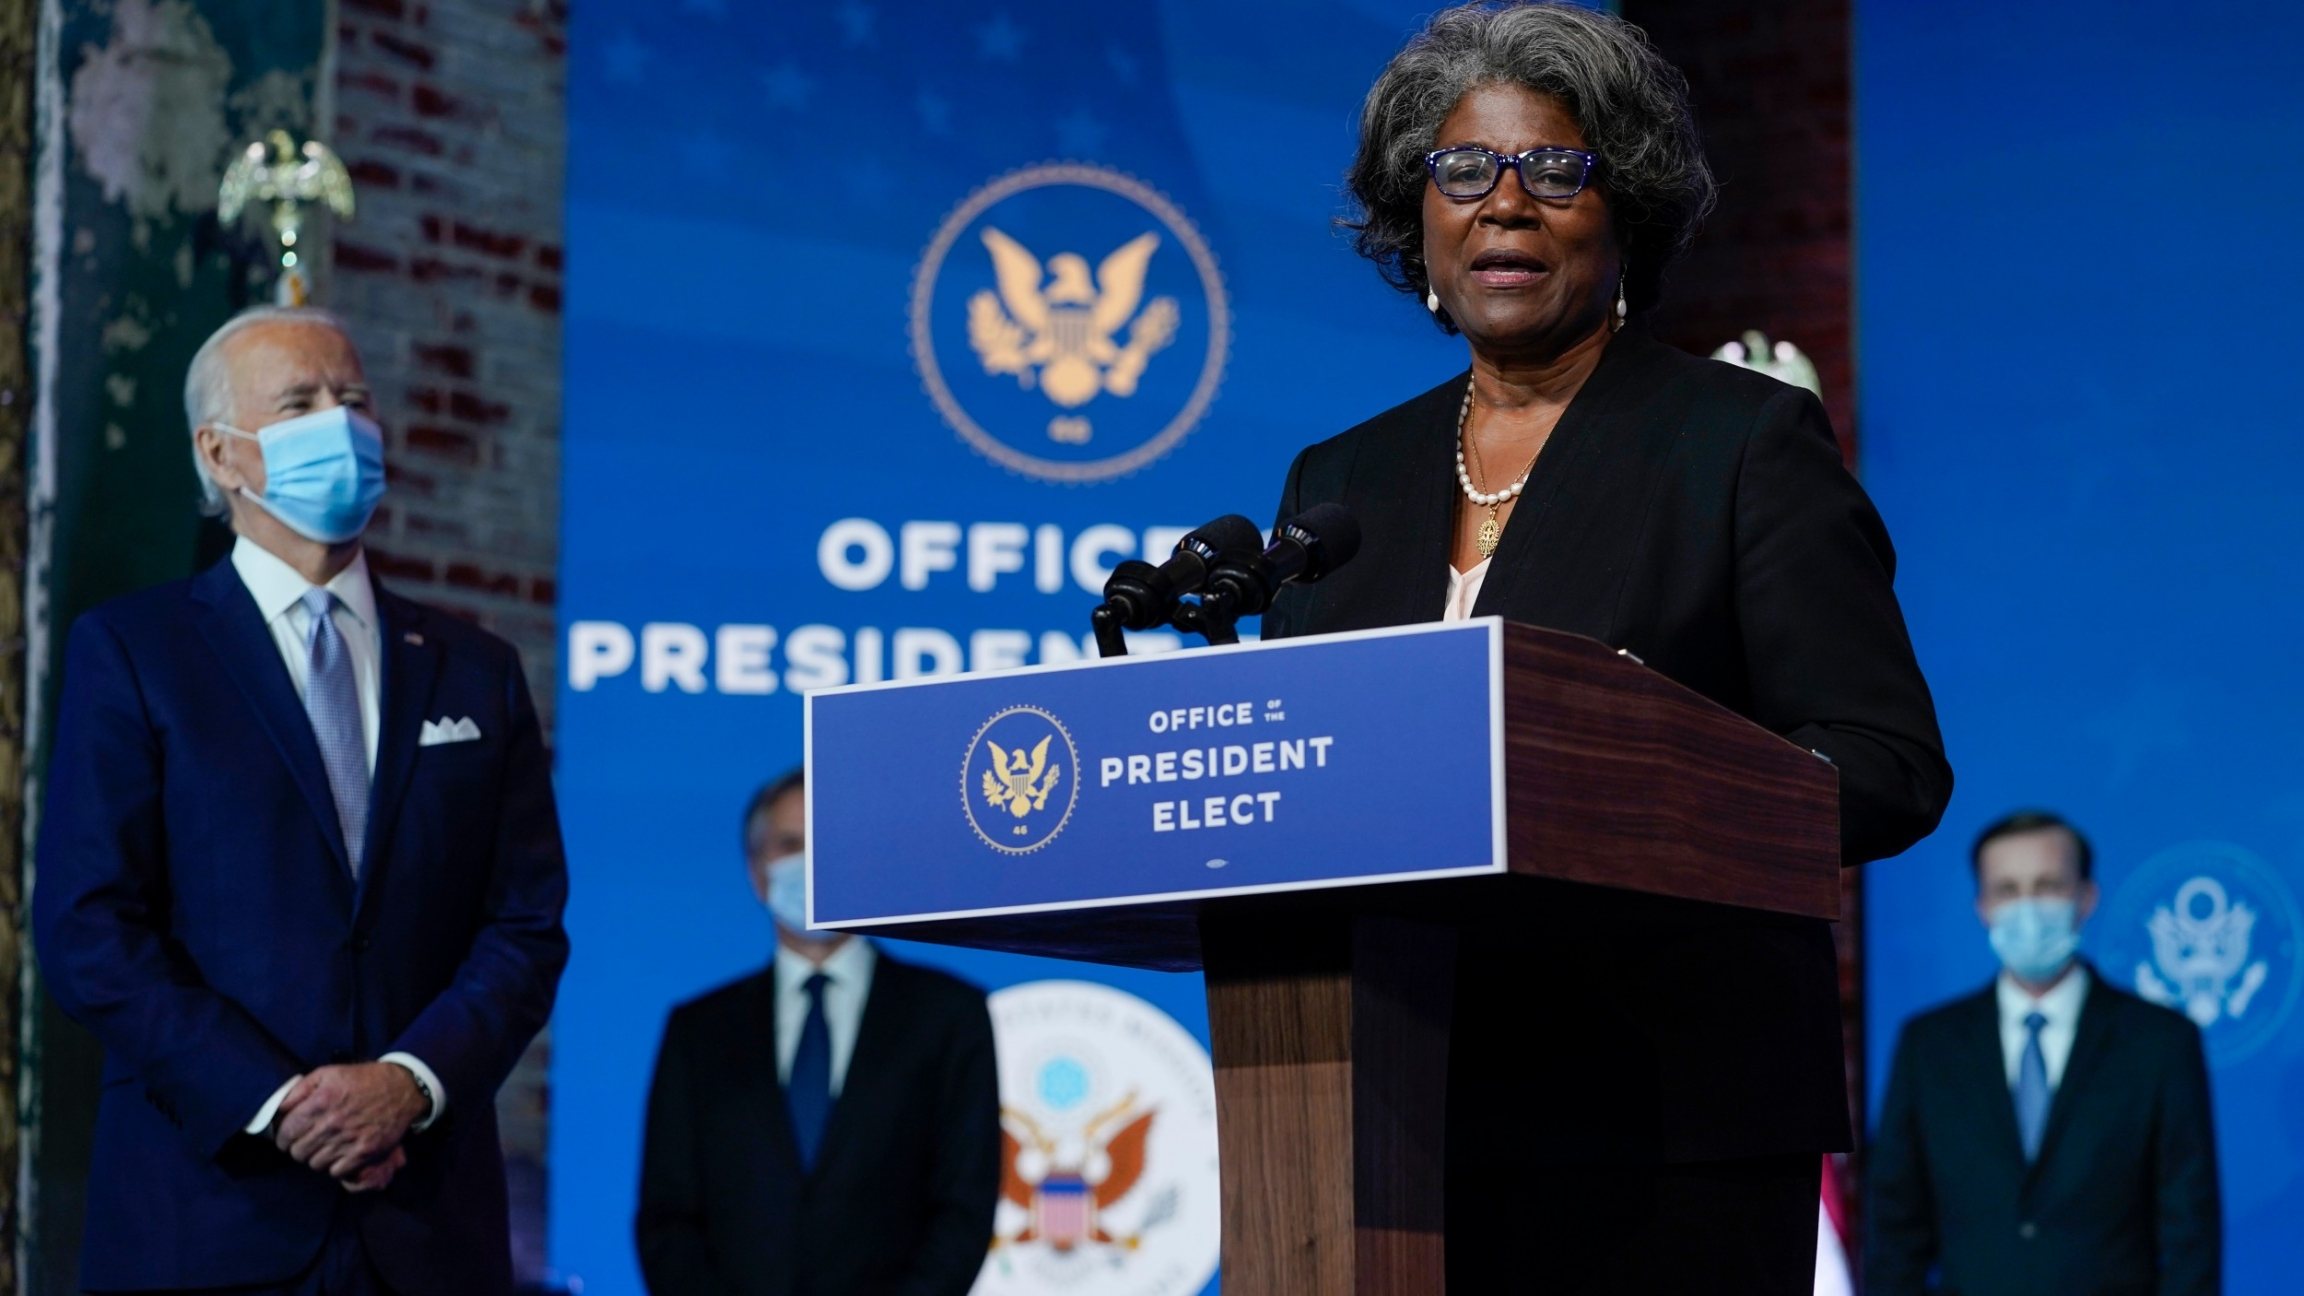 Joe Biden, a white man, is stands near nominee Linda Thomas-Greenfield, a Black woman, who is wearing a dark blue suit onstage at a podium.